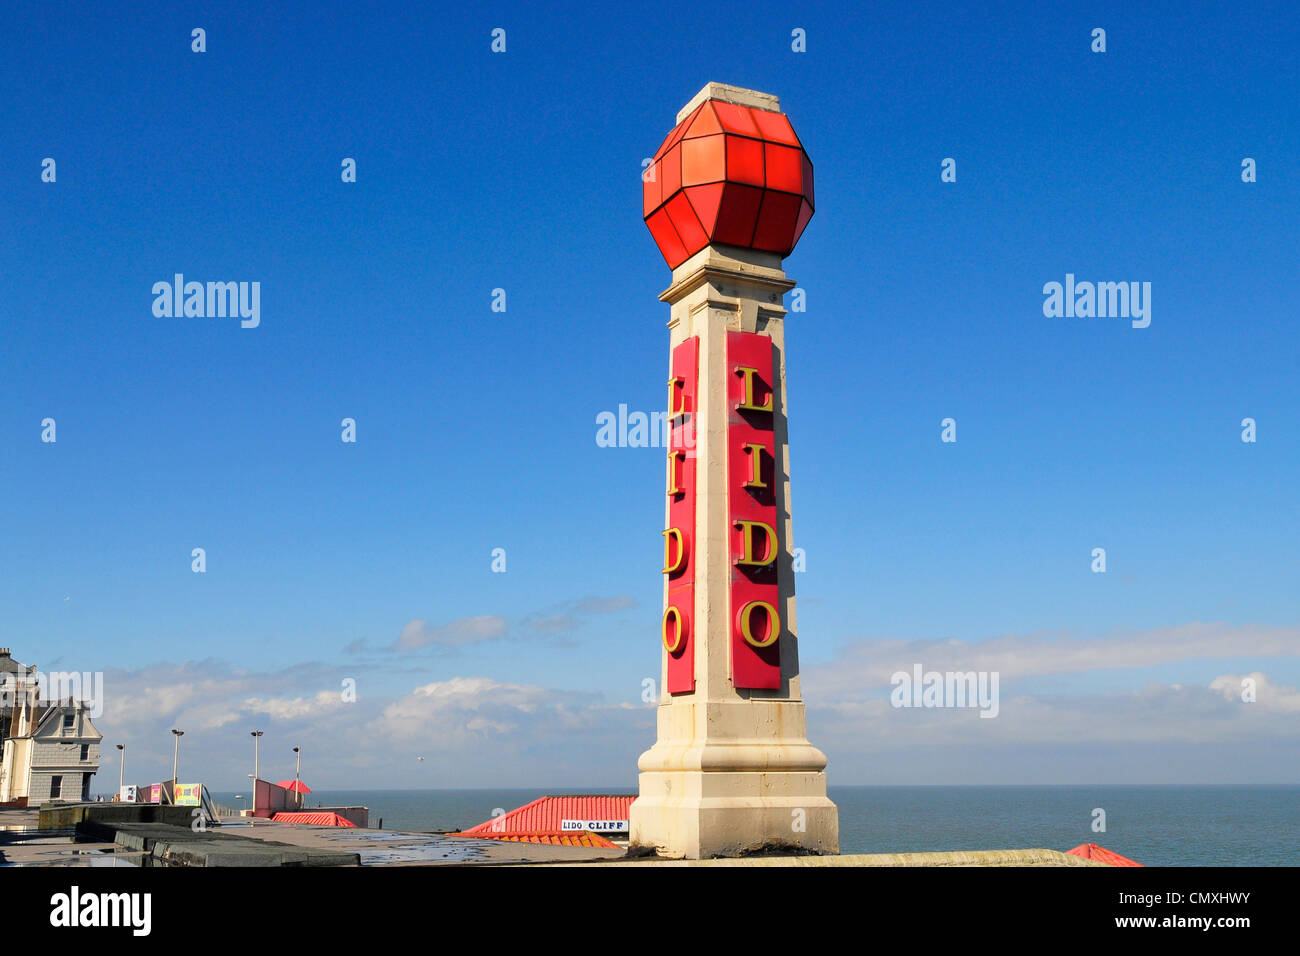 Lido in Cliftonville, near Margate, Kent, England - Stock Image